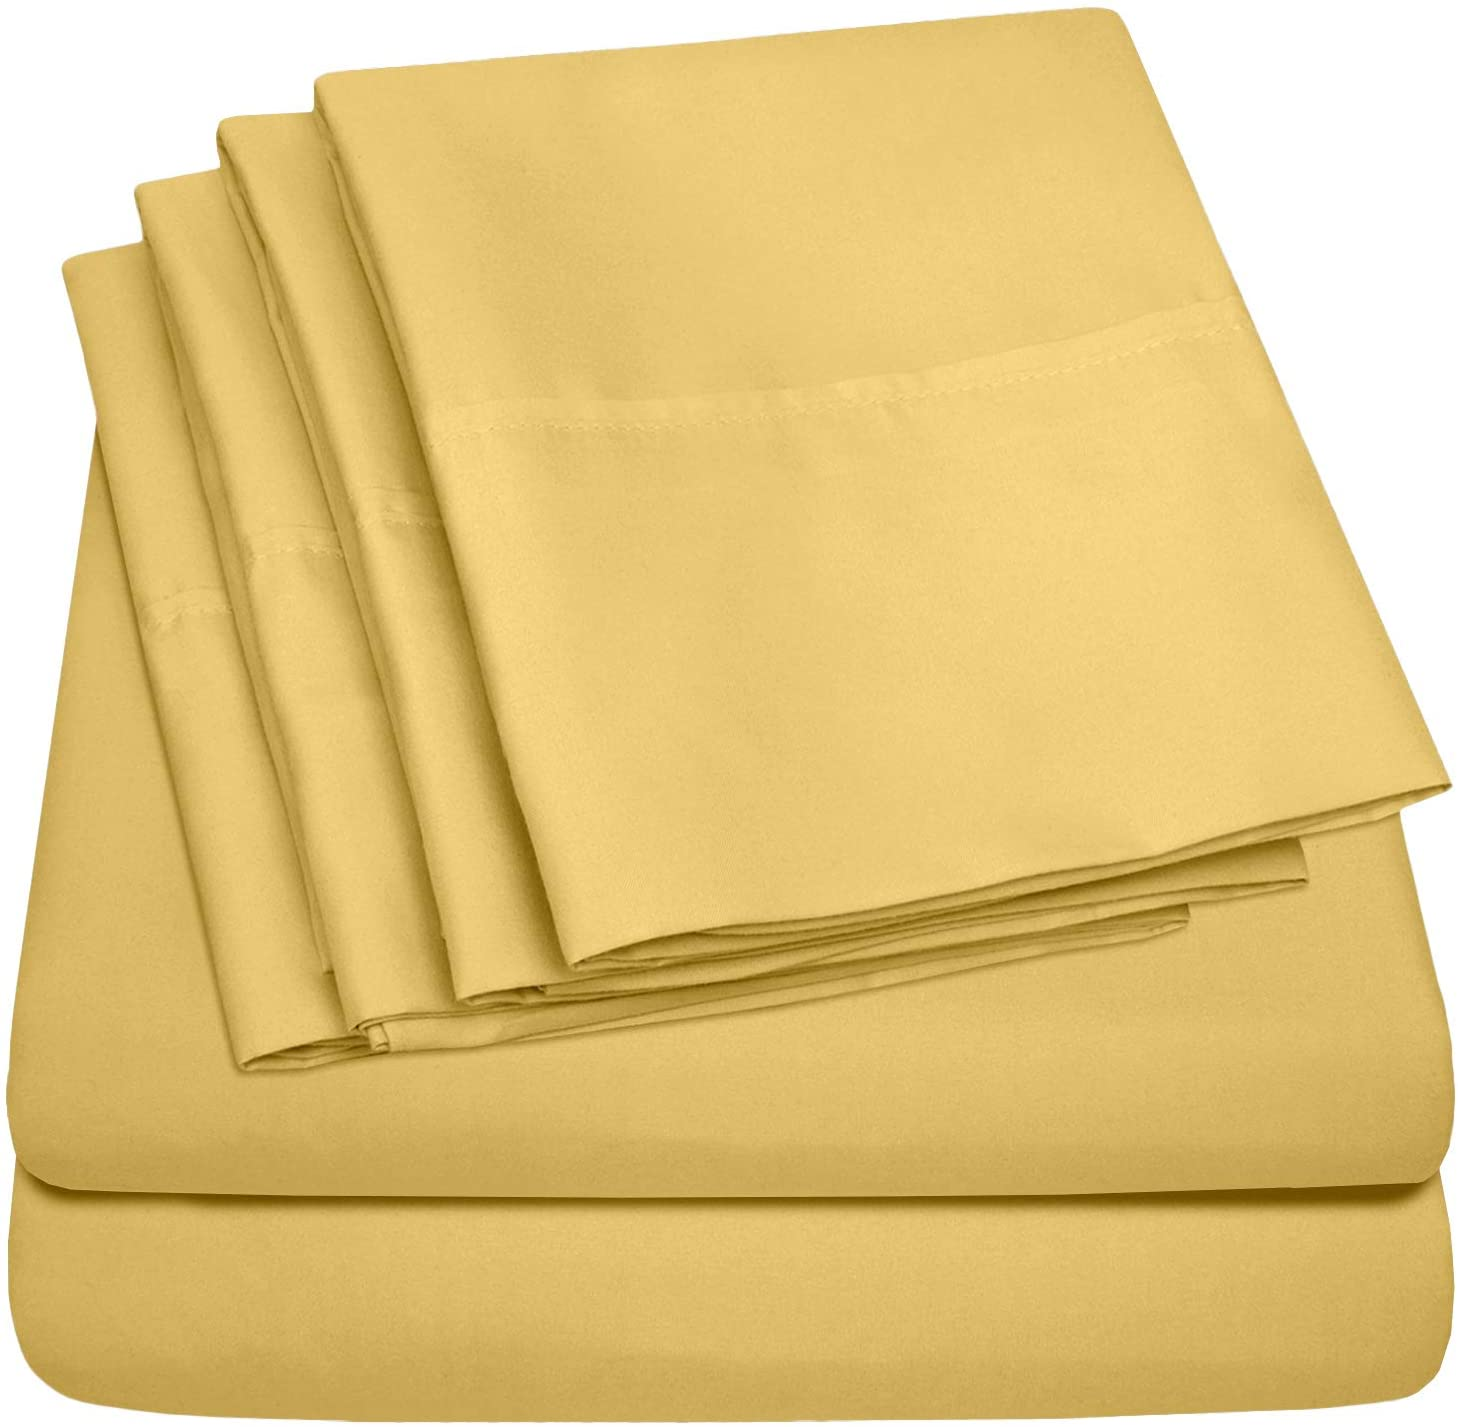 Sweet Home Collection 6 Piece Yellow Bed Sheets